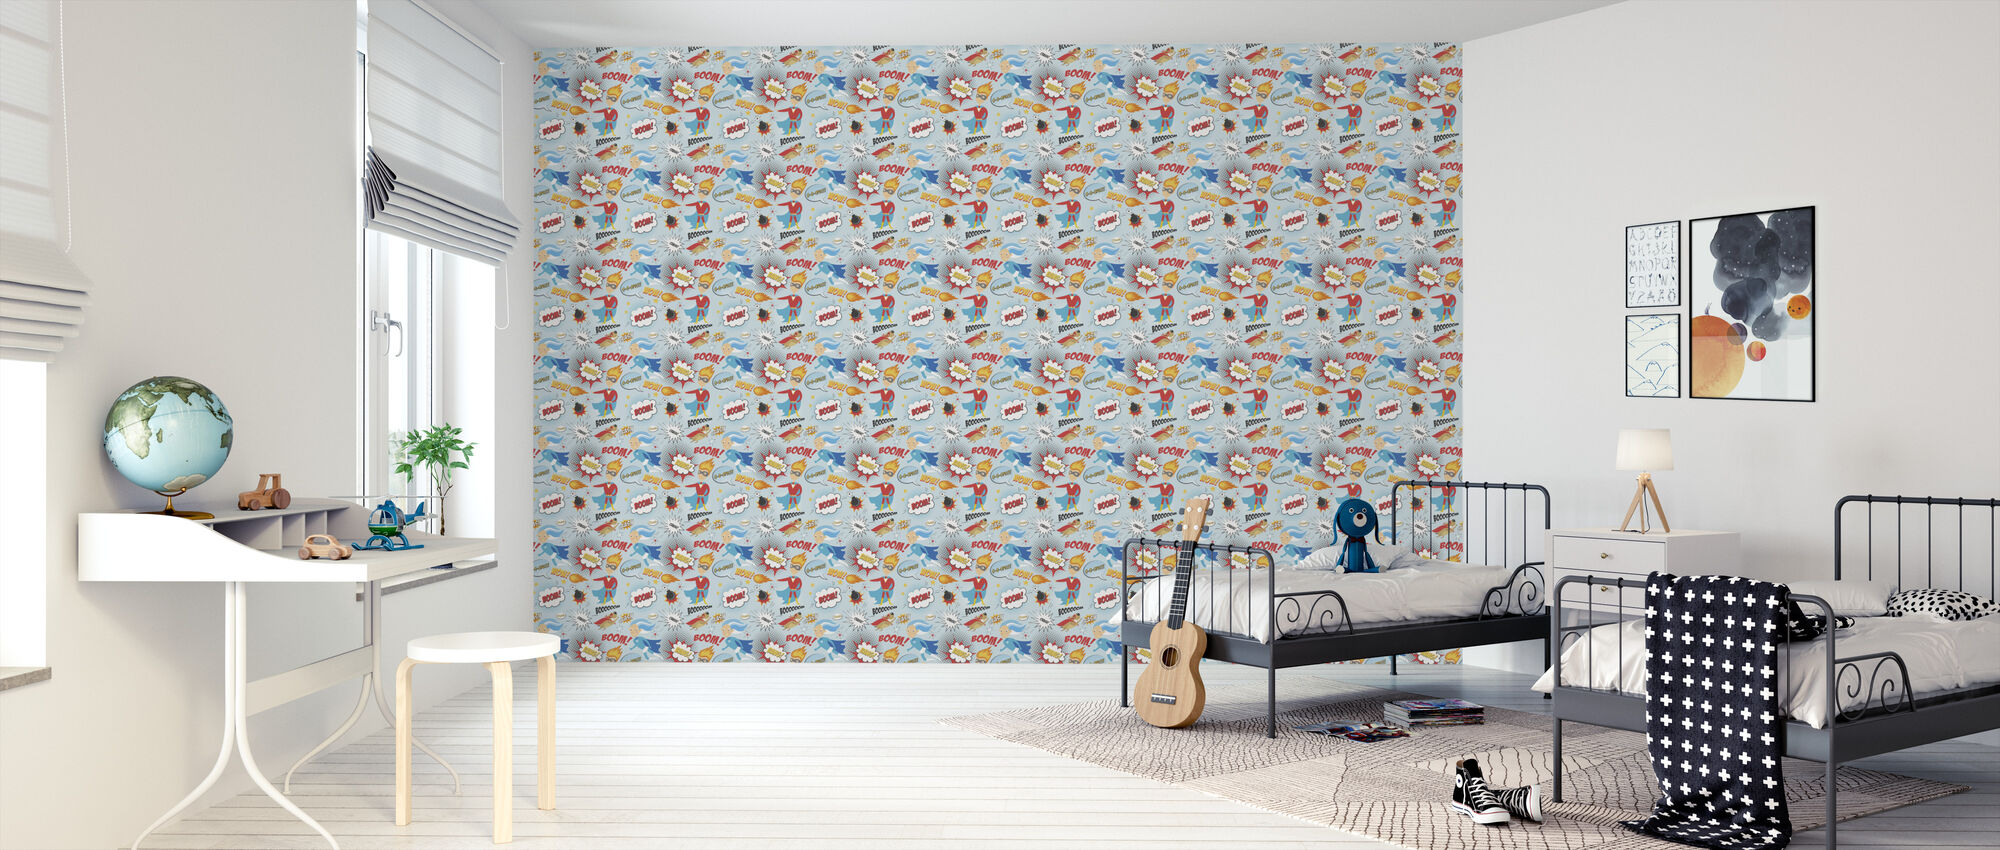 Superheroes - Wallpaper - Kids Room